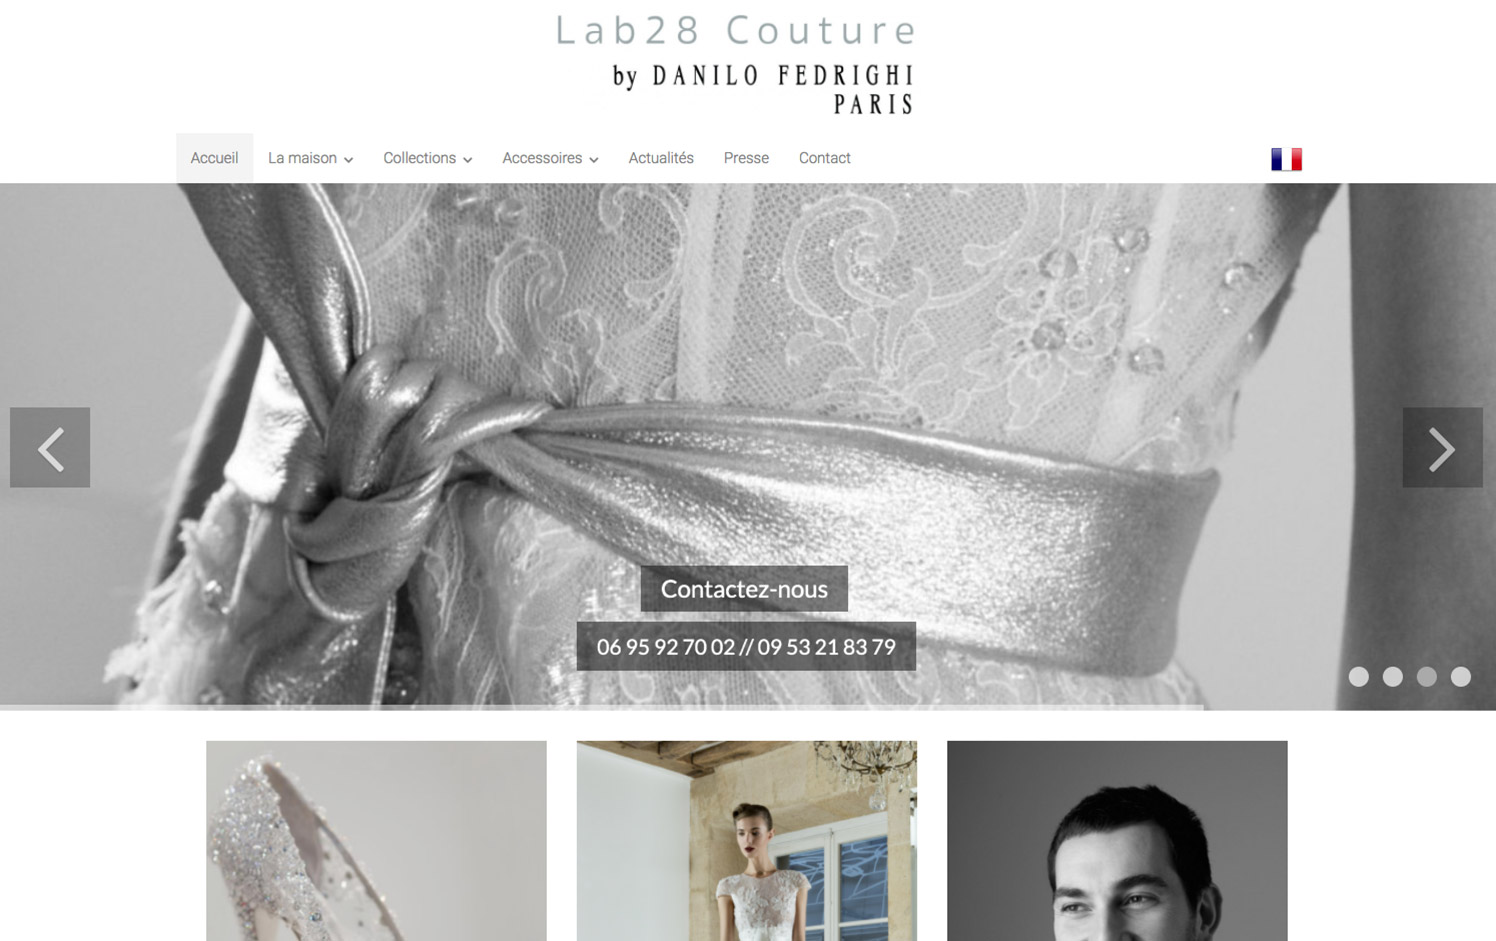 Lab28 couture